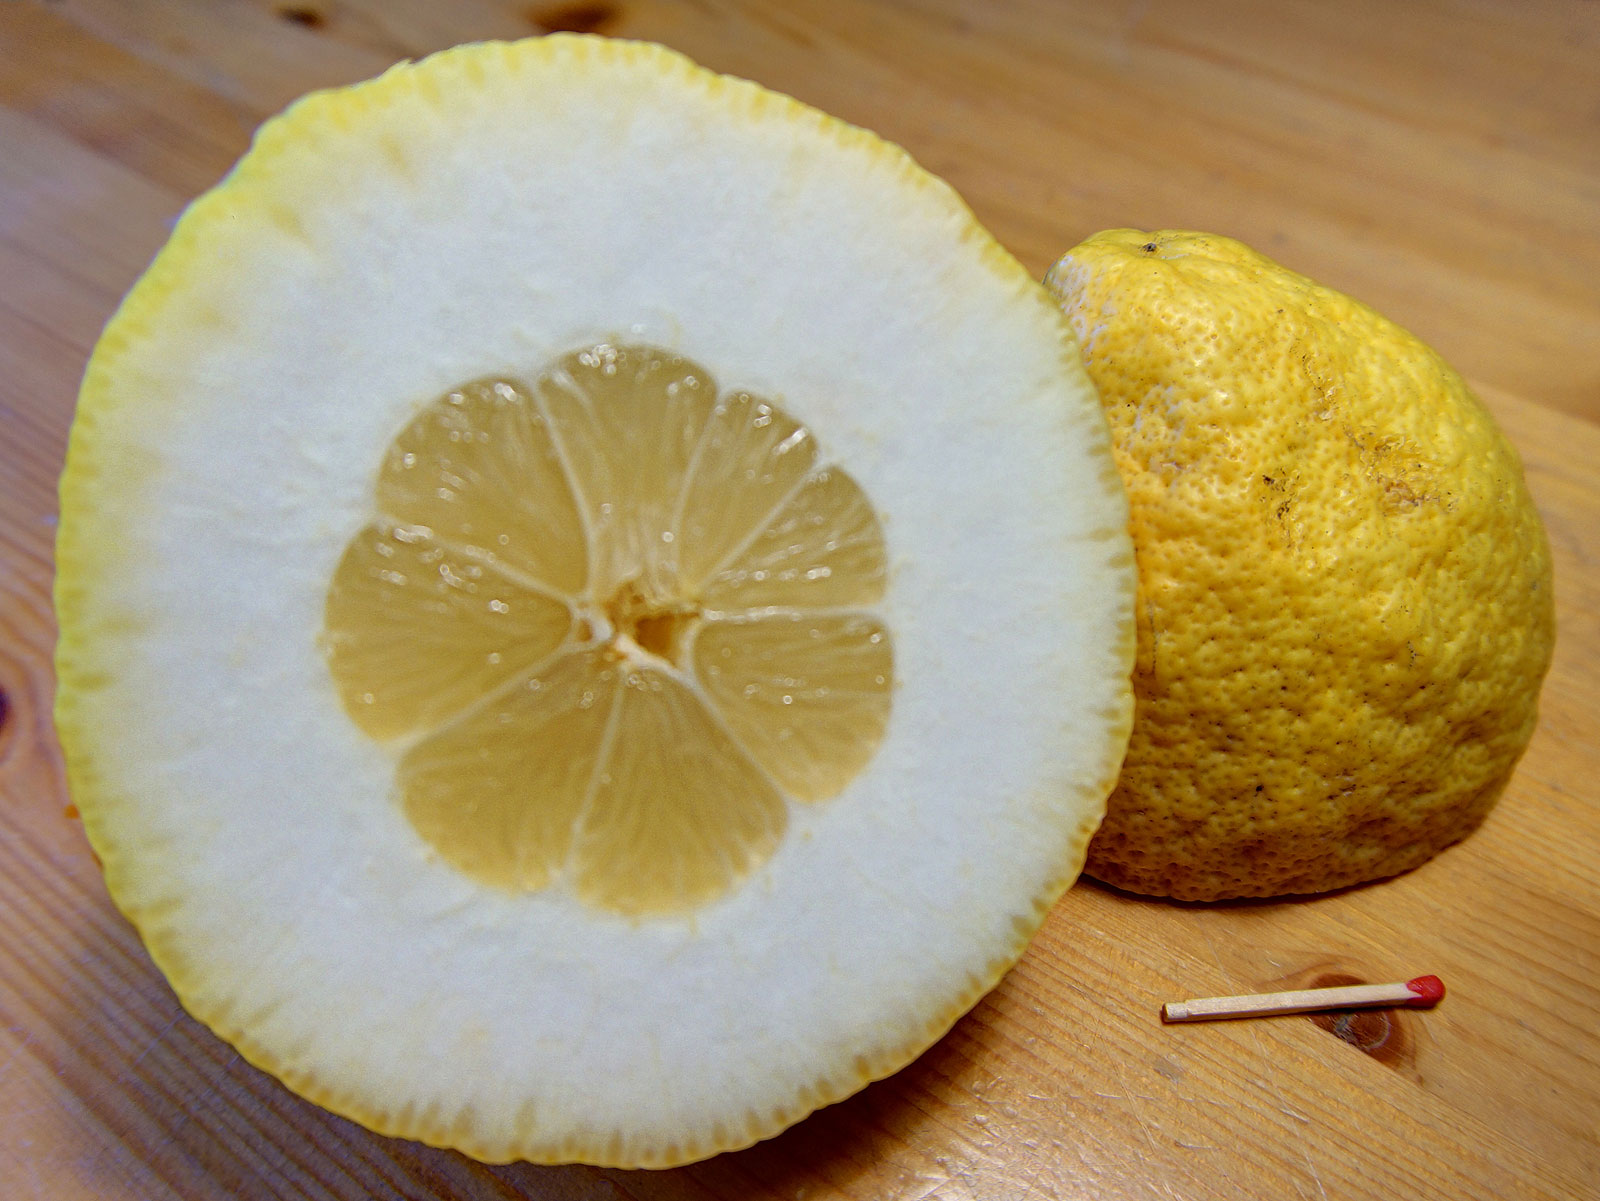 Citron cross-section